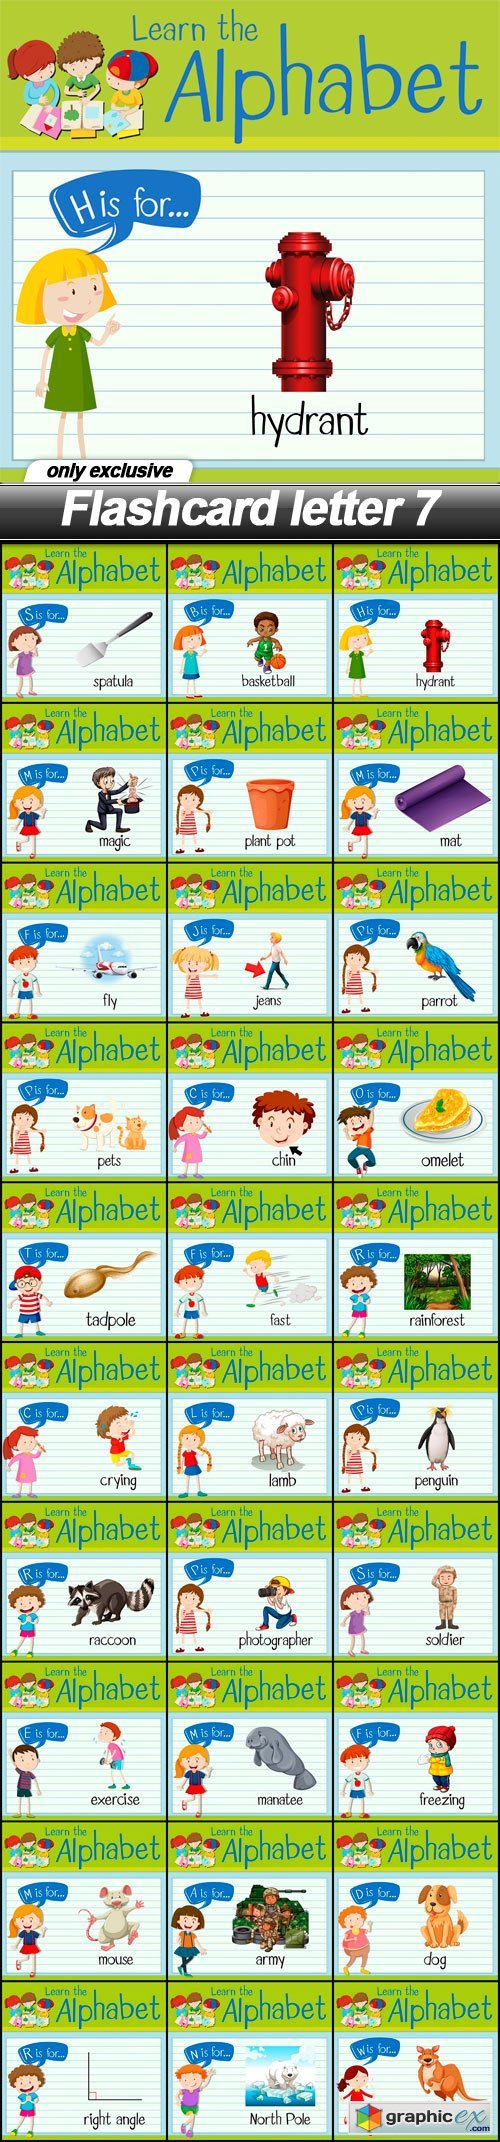 Flashcard letter 7 - 30 EPS